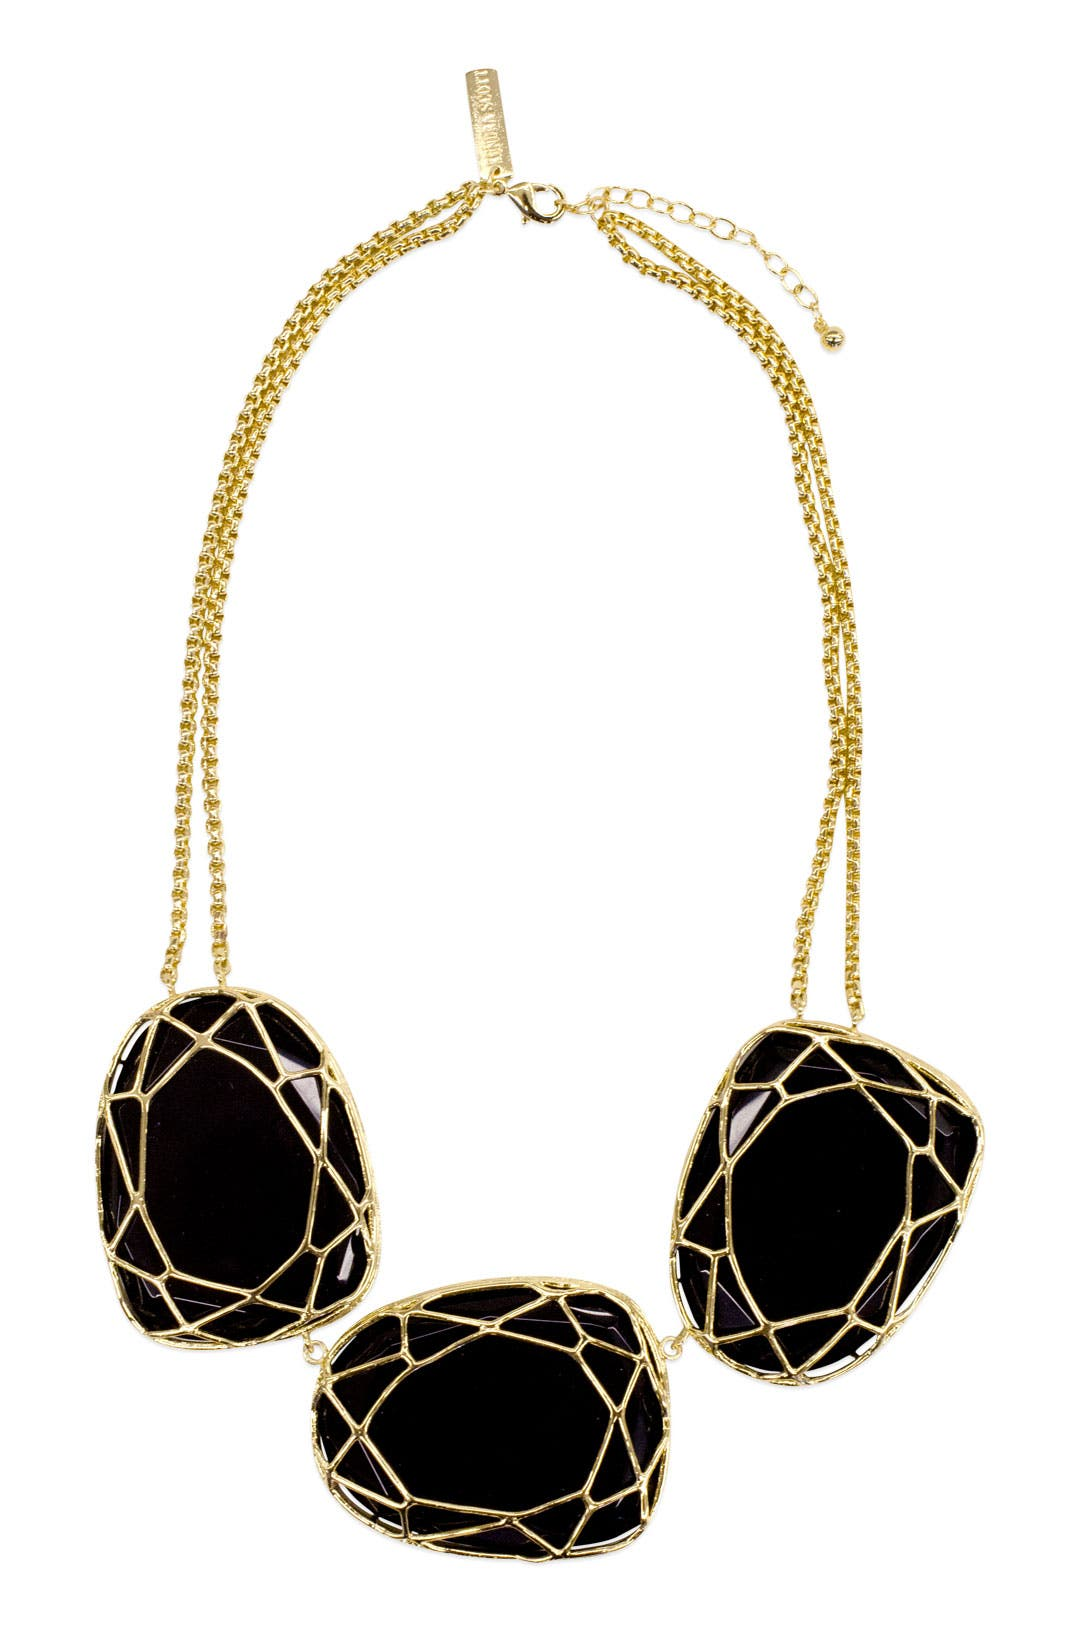 Black Onyx Marcella Necklace by Kendra Scott